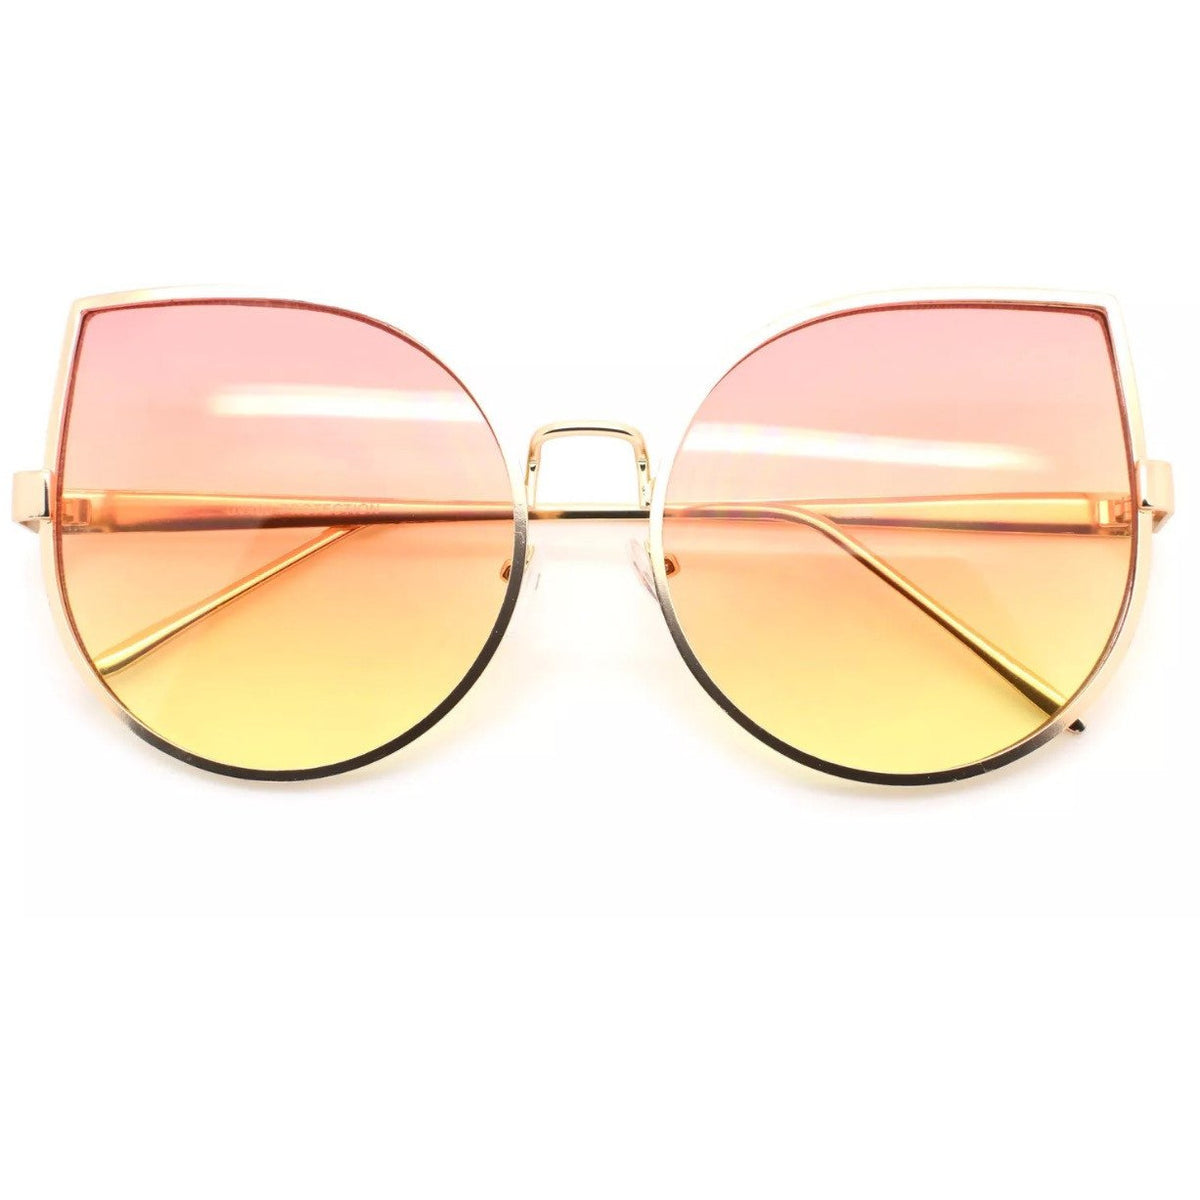 Oversized CatEye Metal Frame Sunglasses Glasses - Poshed Apparel - 3